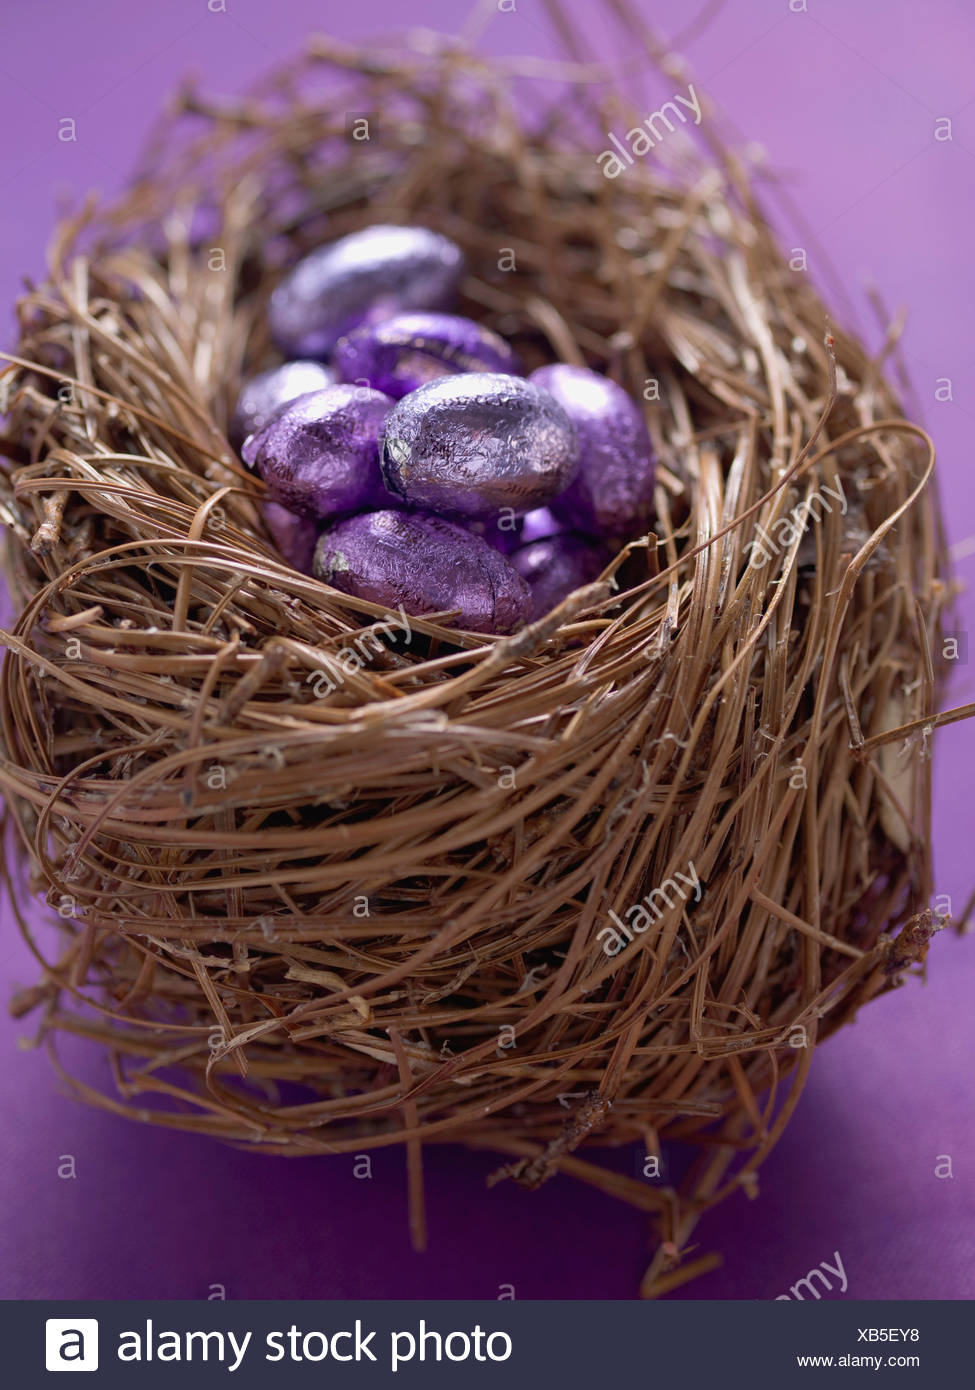 Chocolate Easter Eggs In Purple Foil An Nest